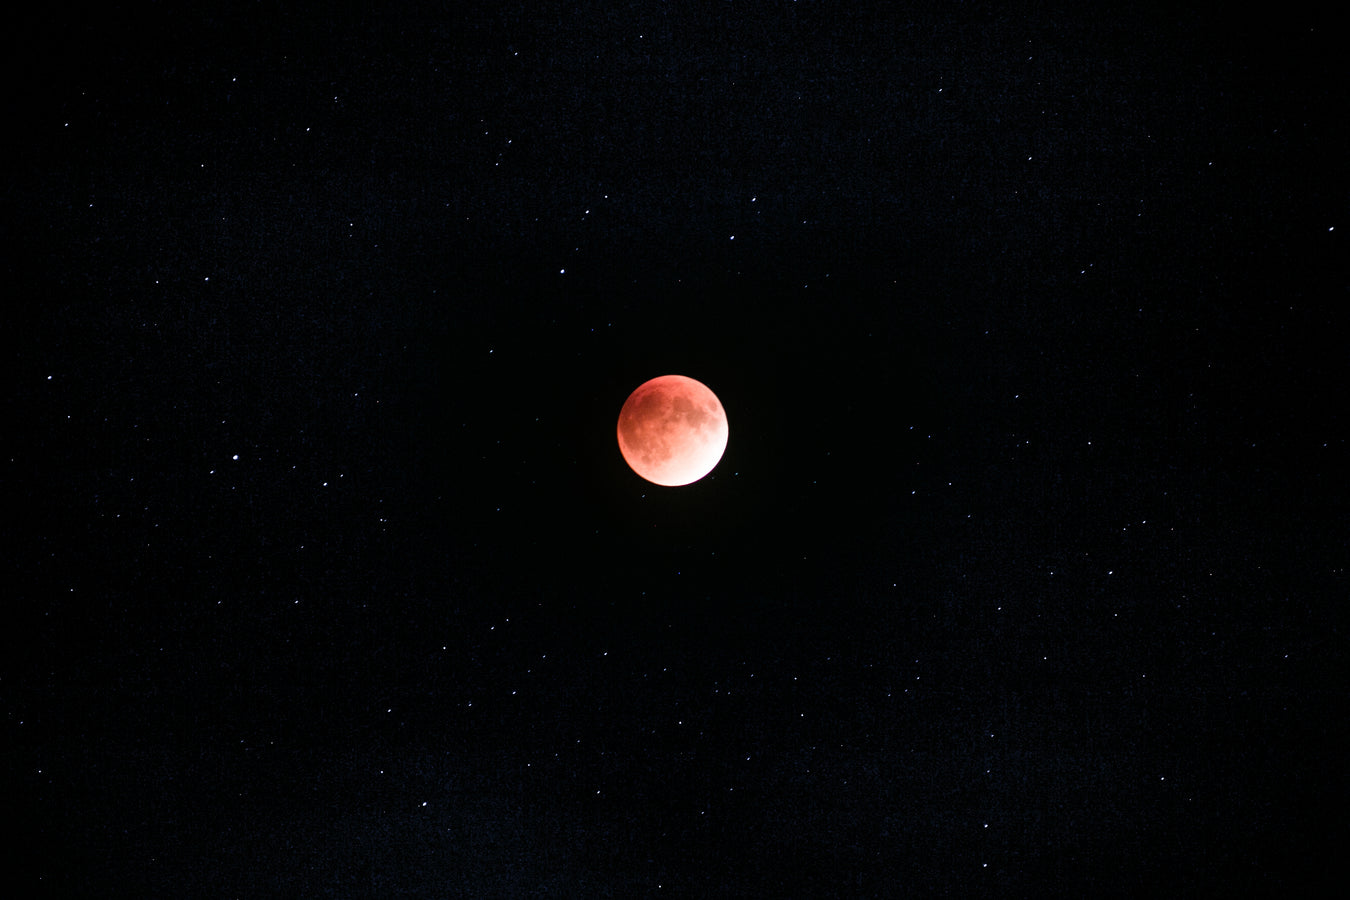 red moon in space